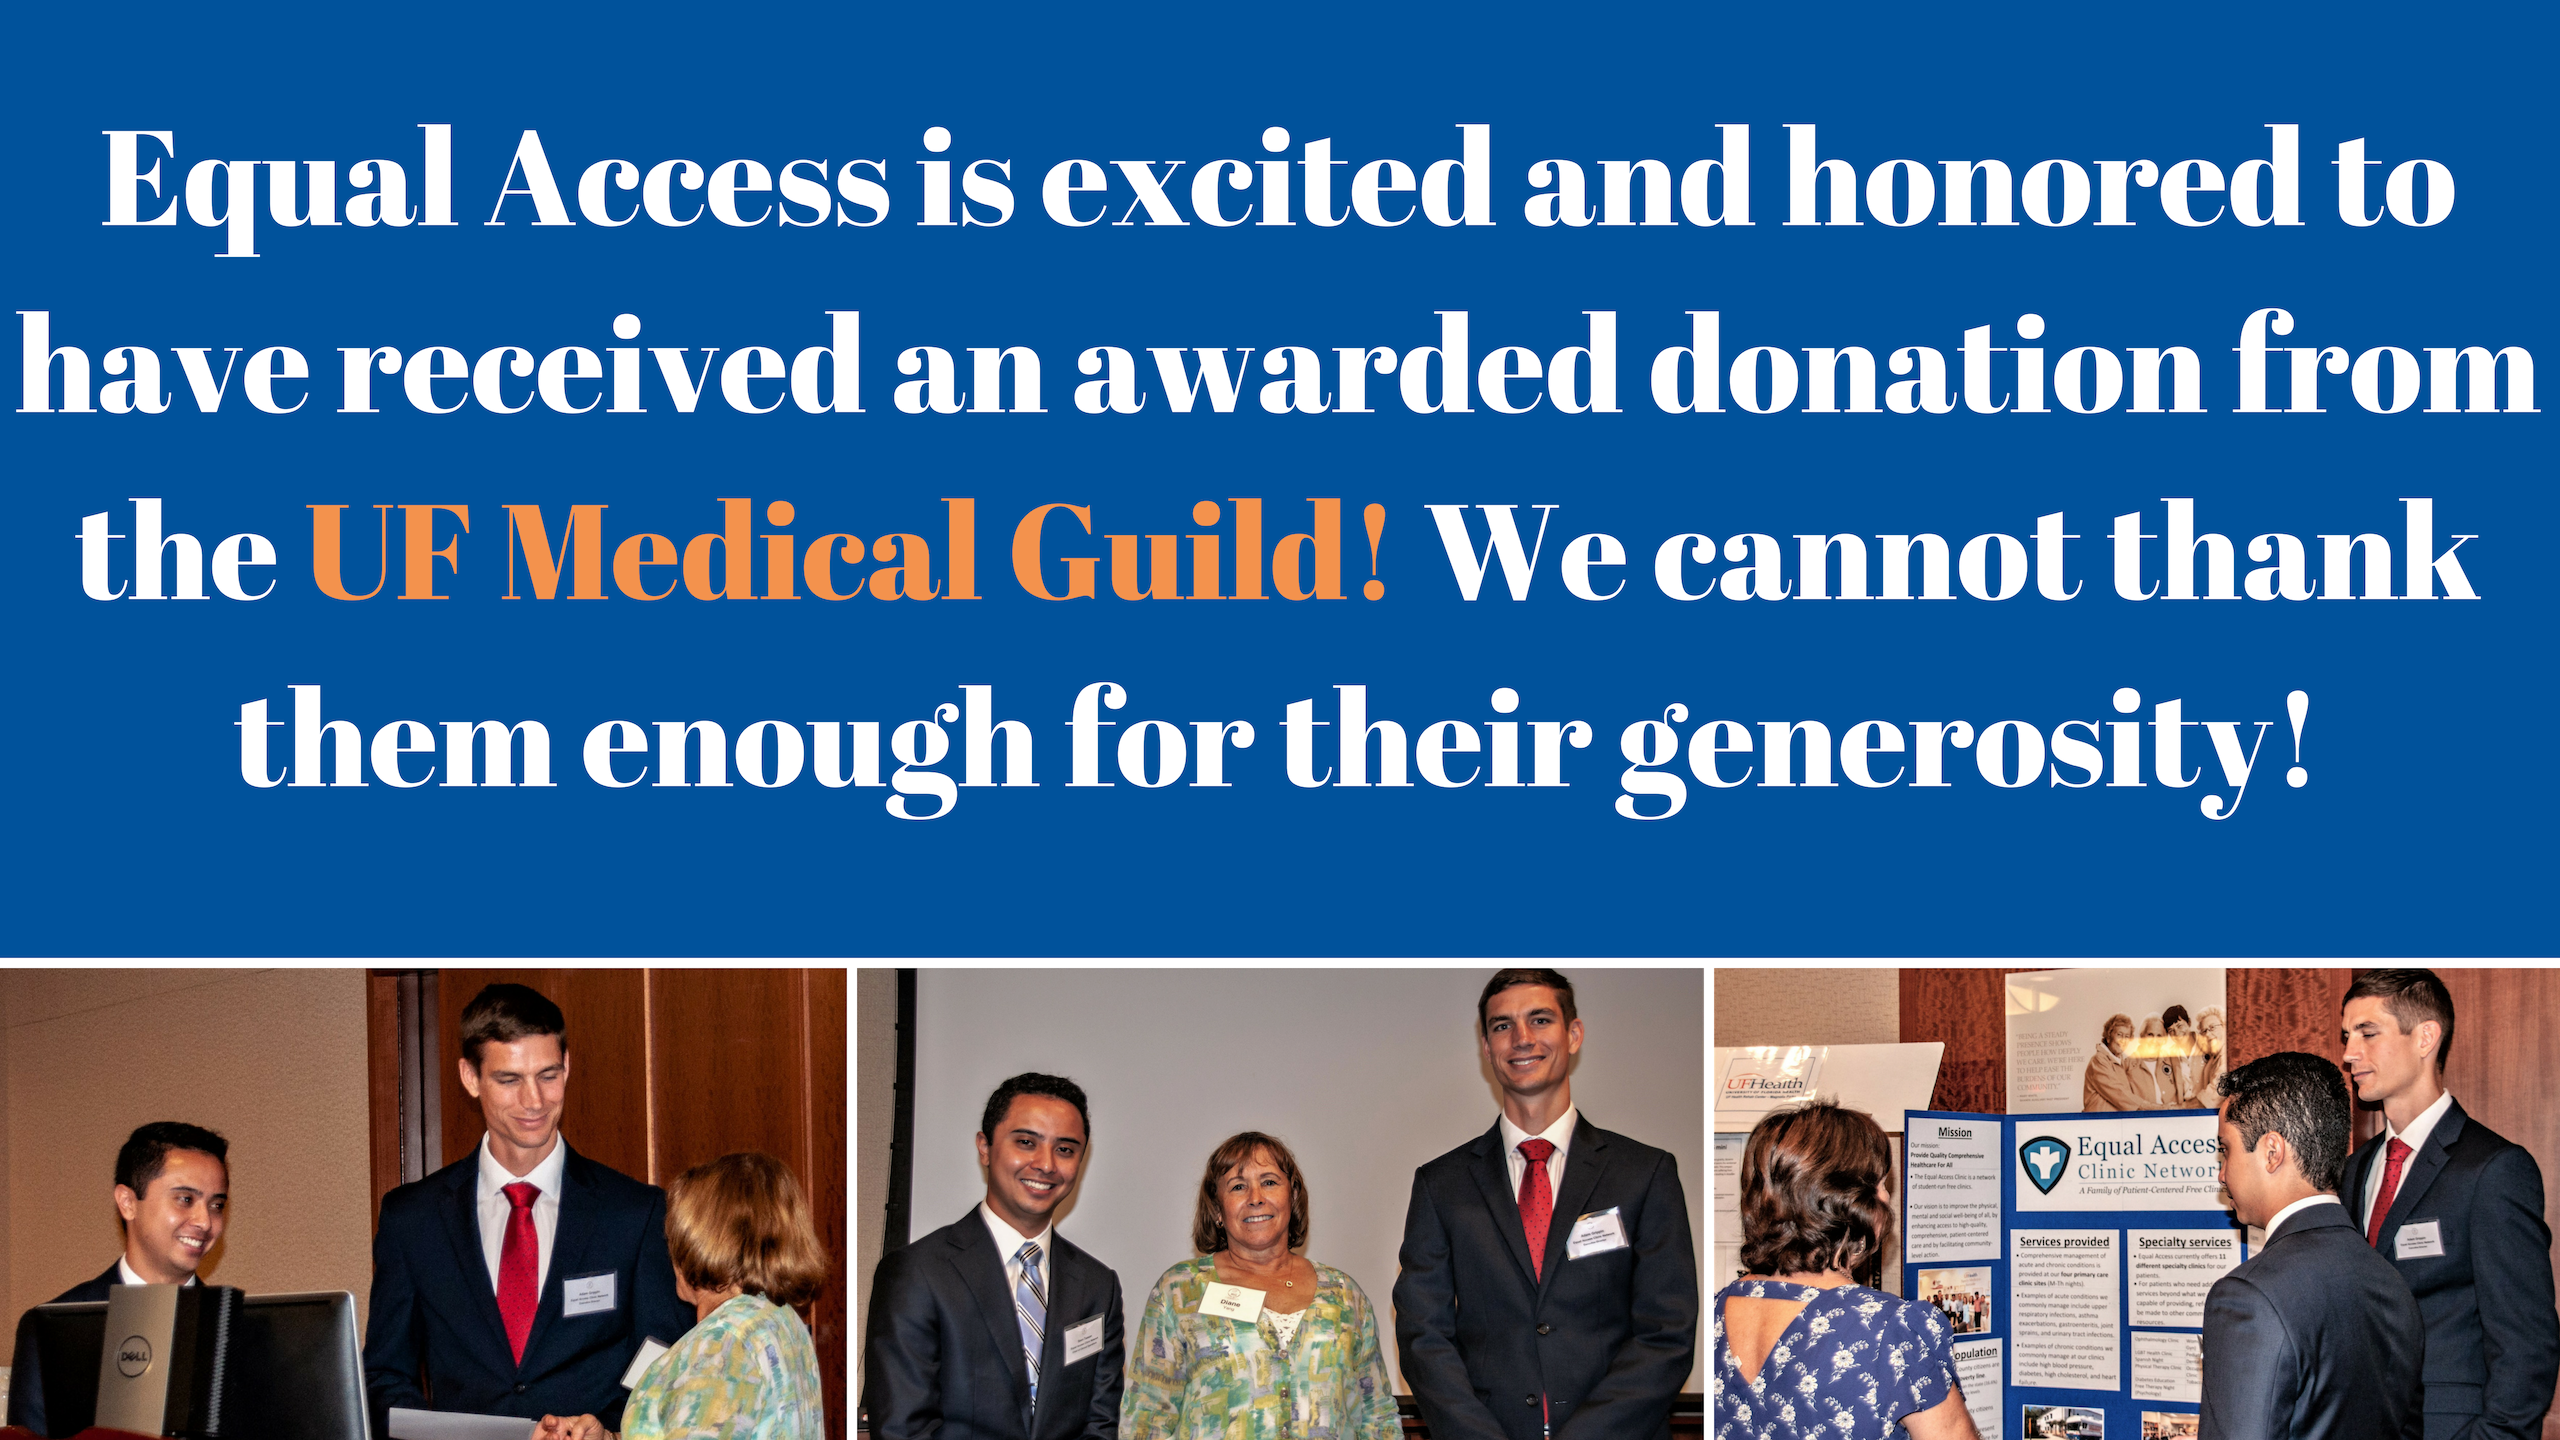 Equal Access thanks Medical Guild